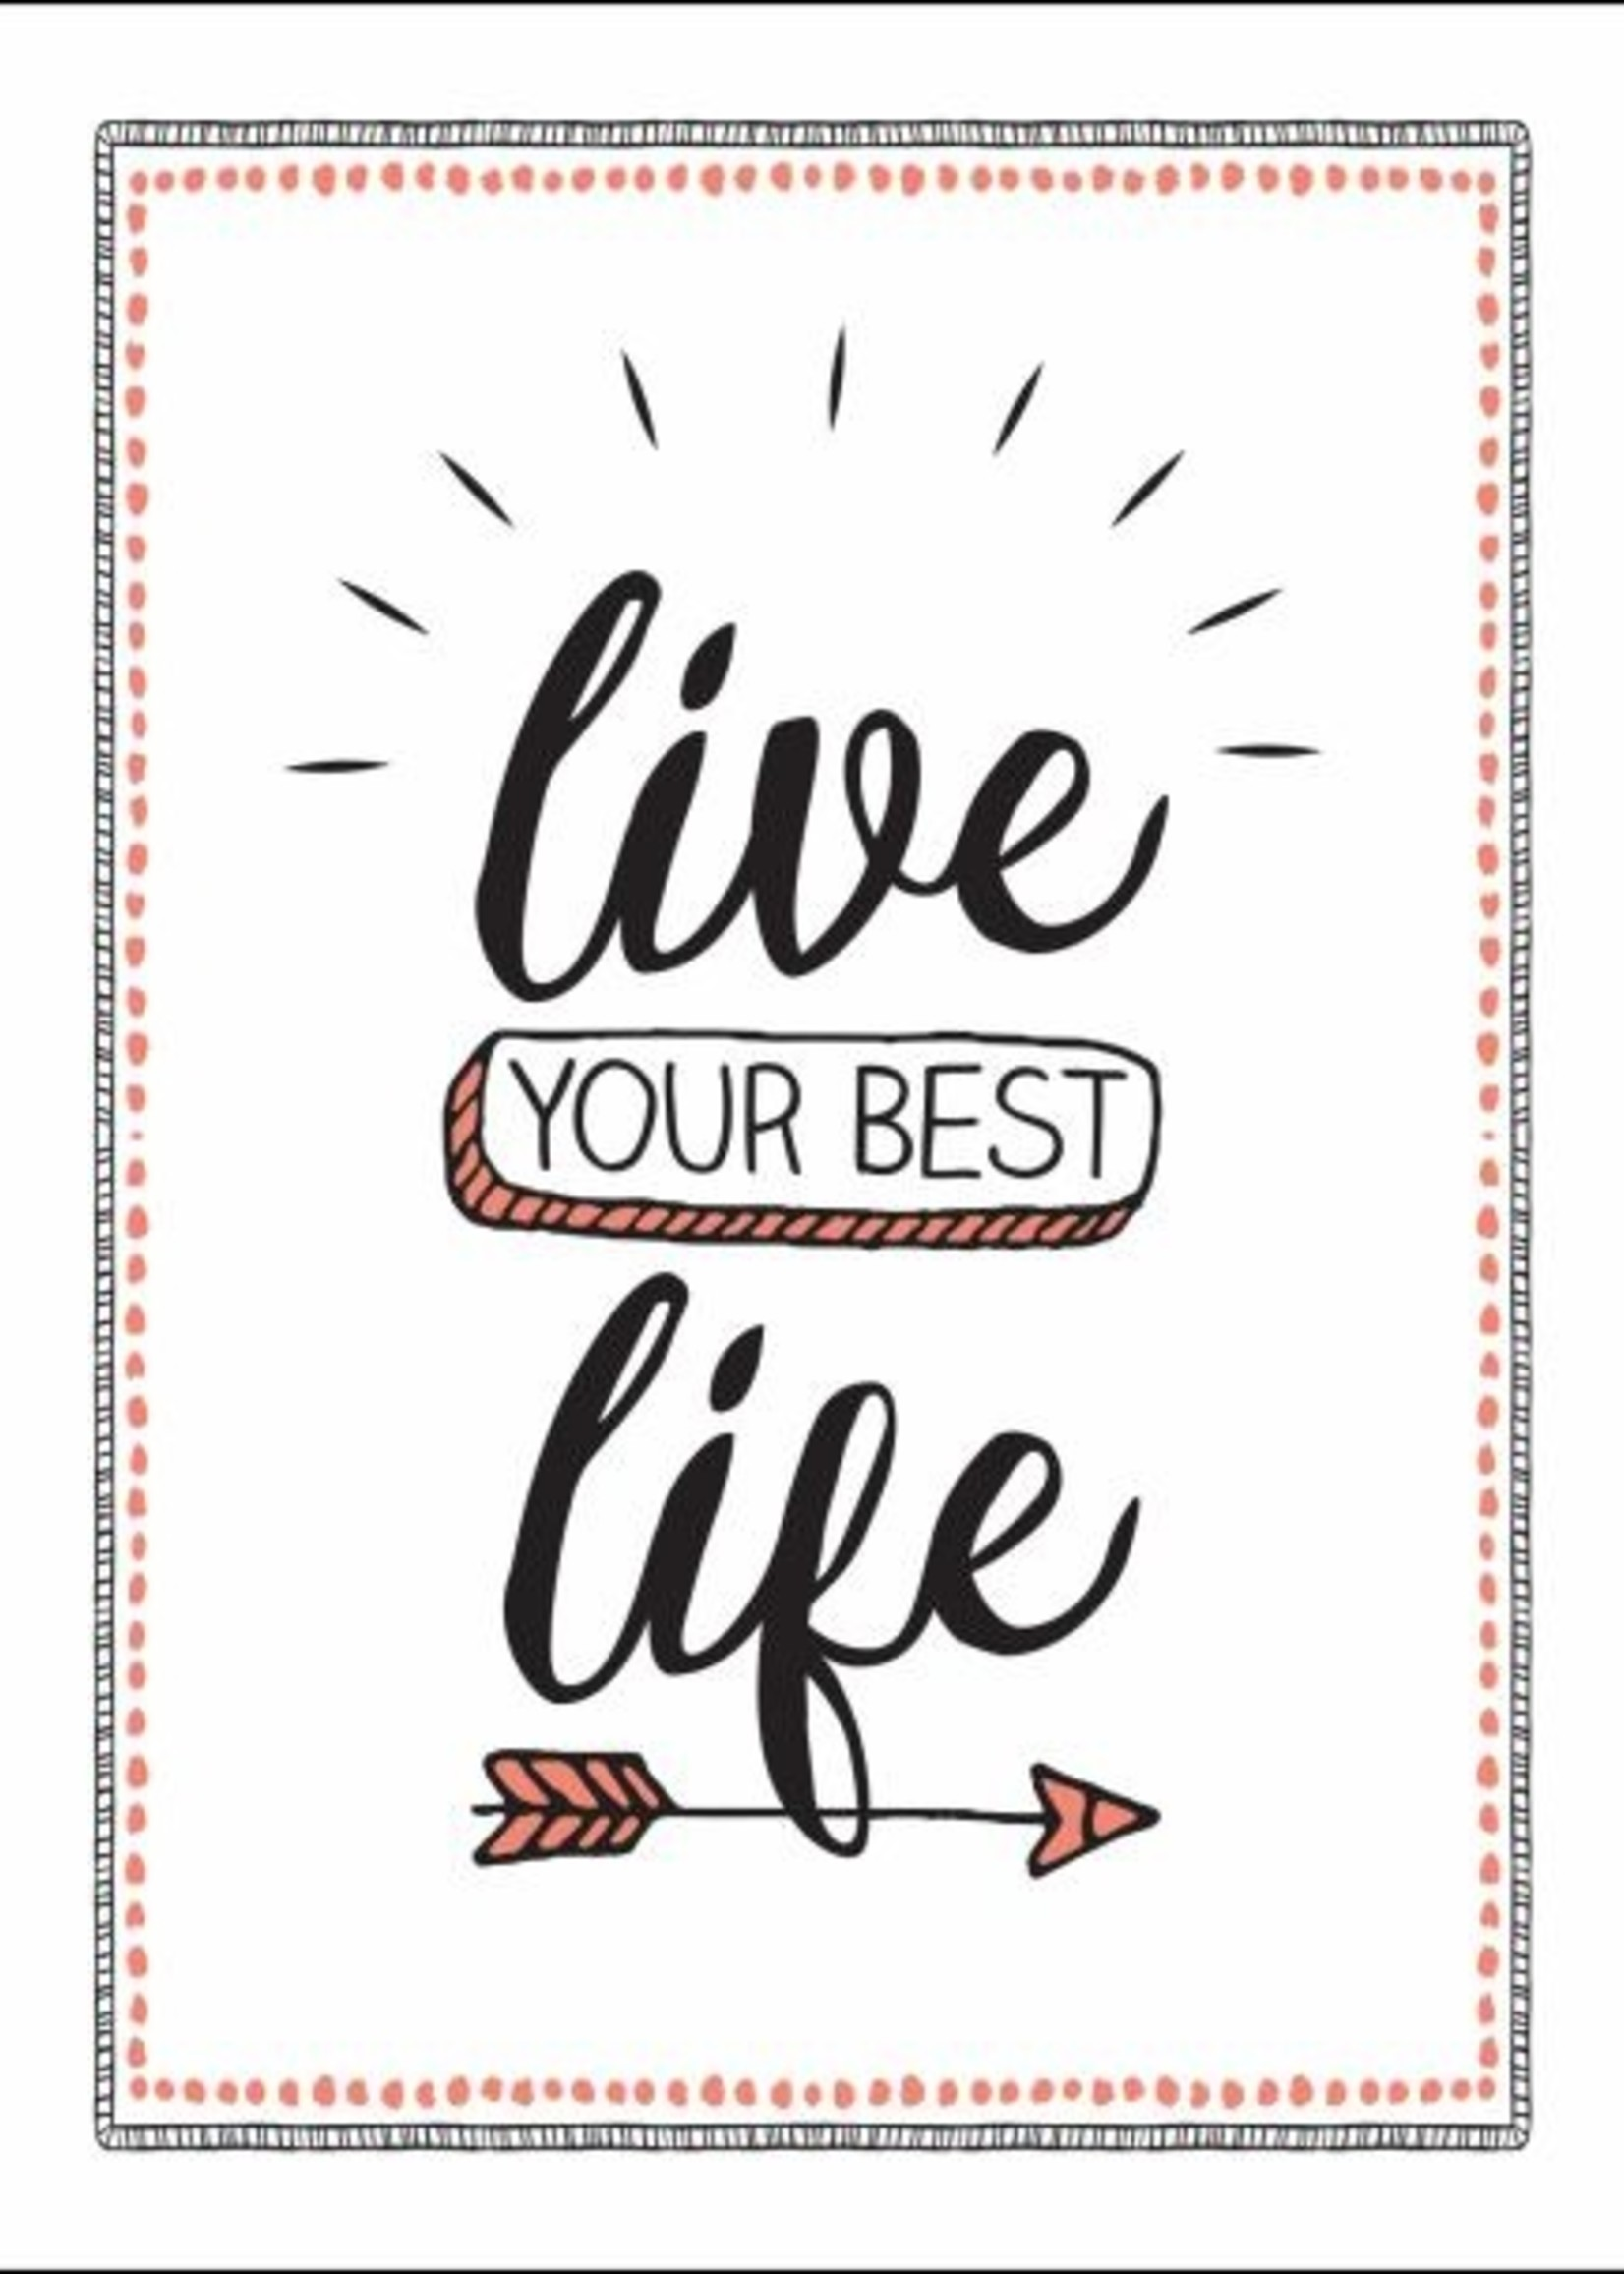 hachette book group hachette how to live your best life book